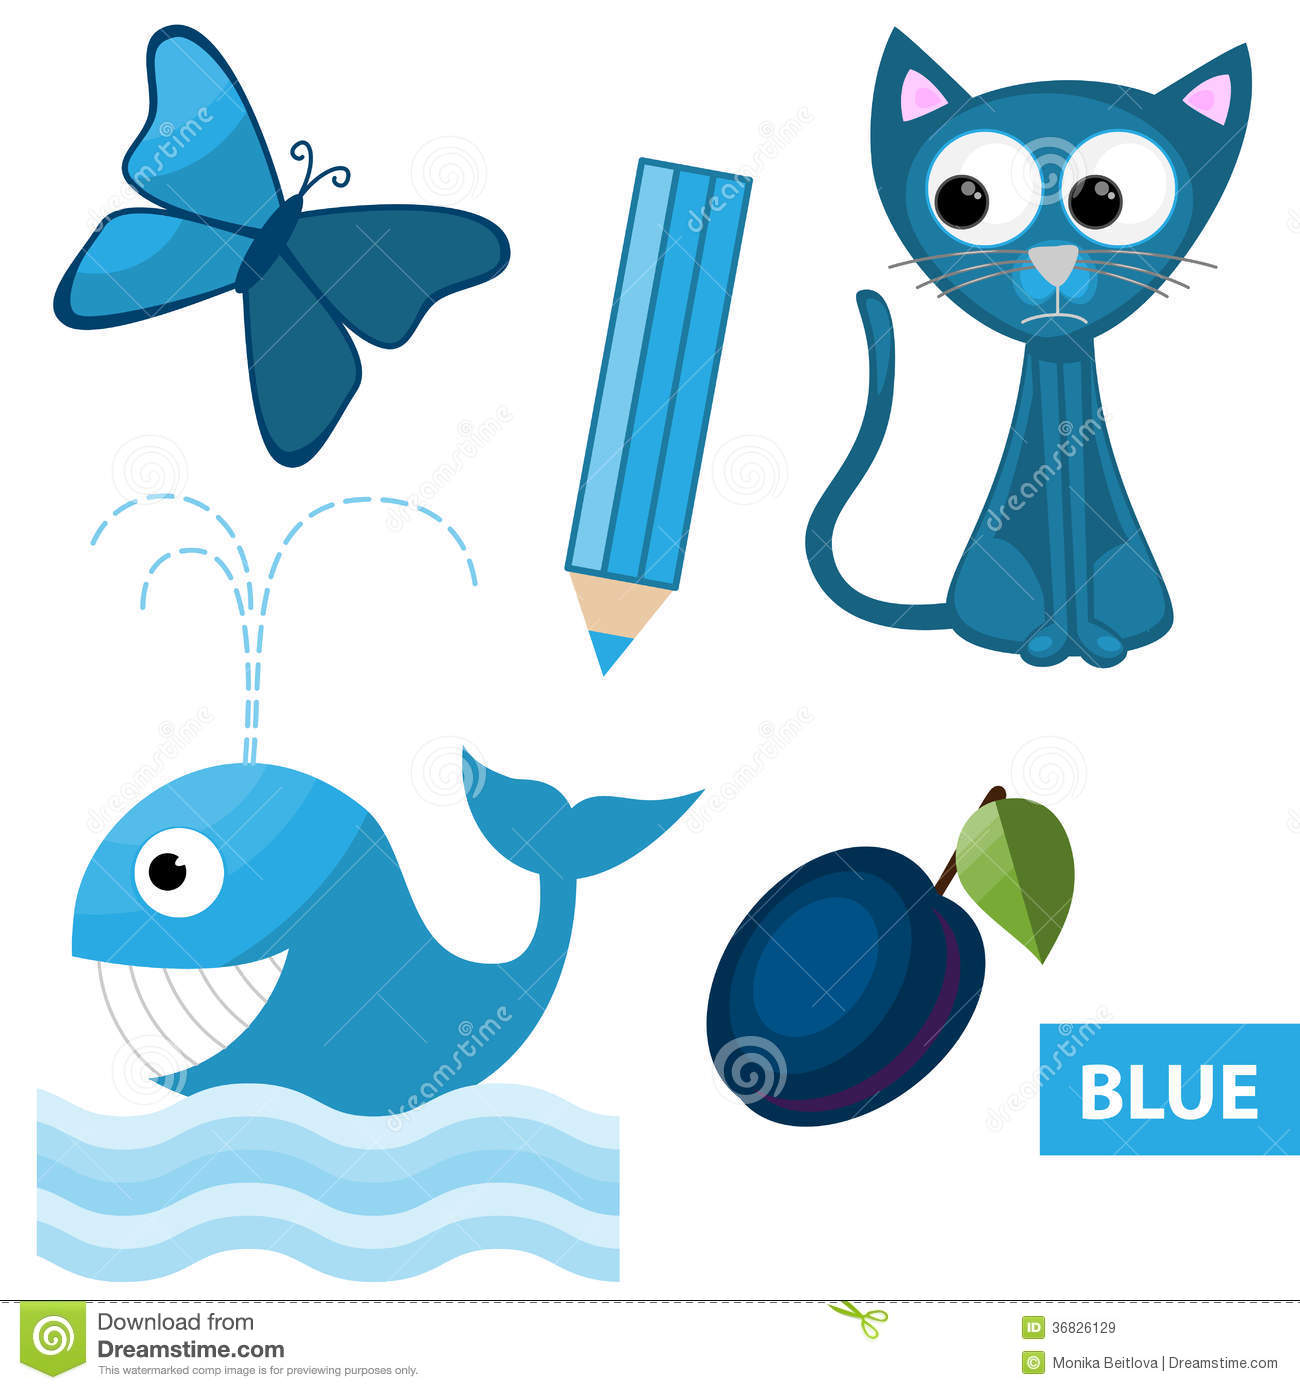 Blue Worksheet Preschool Learning